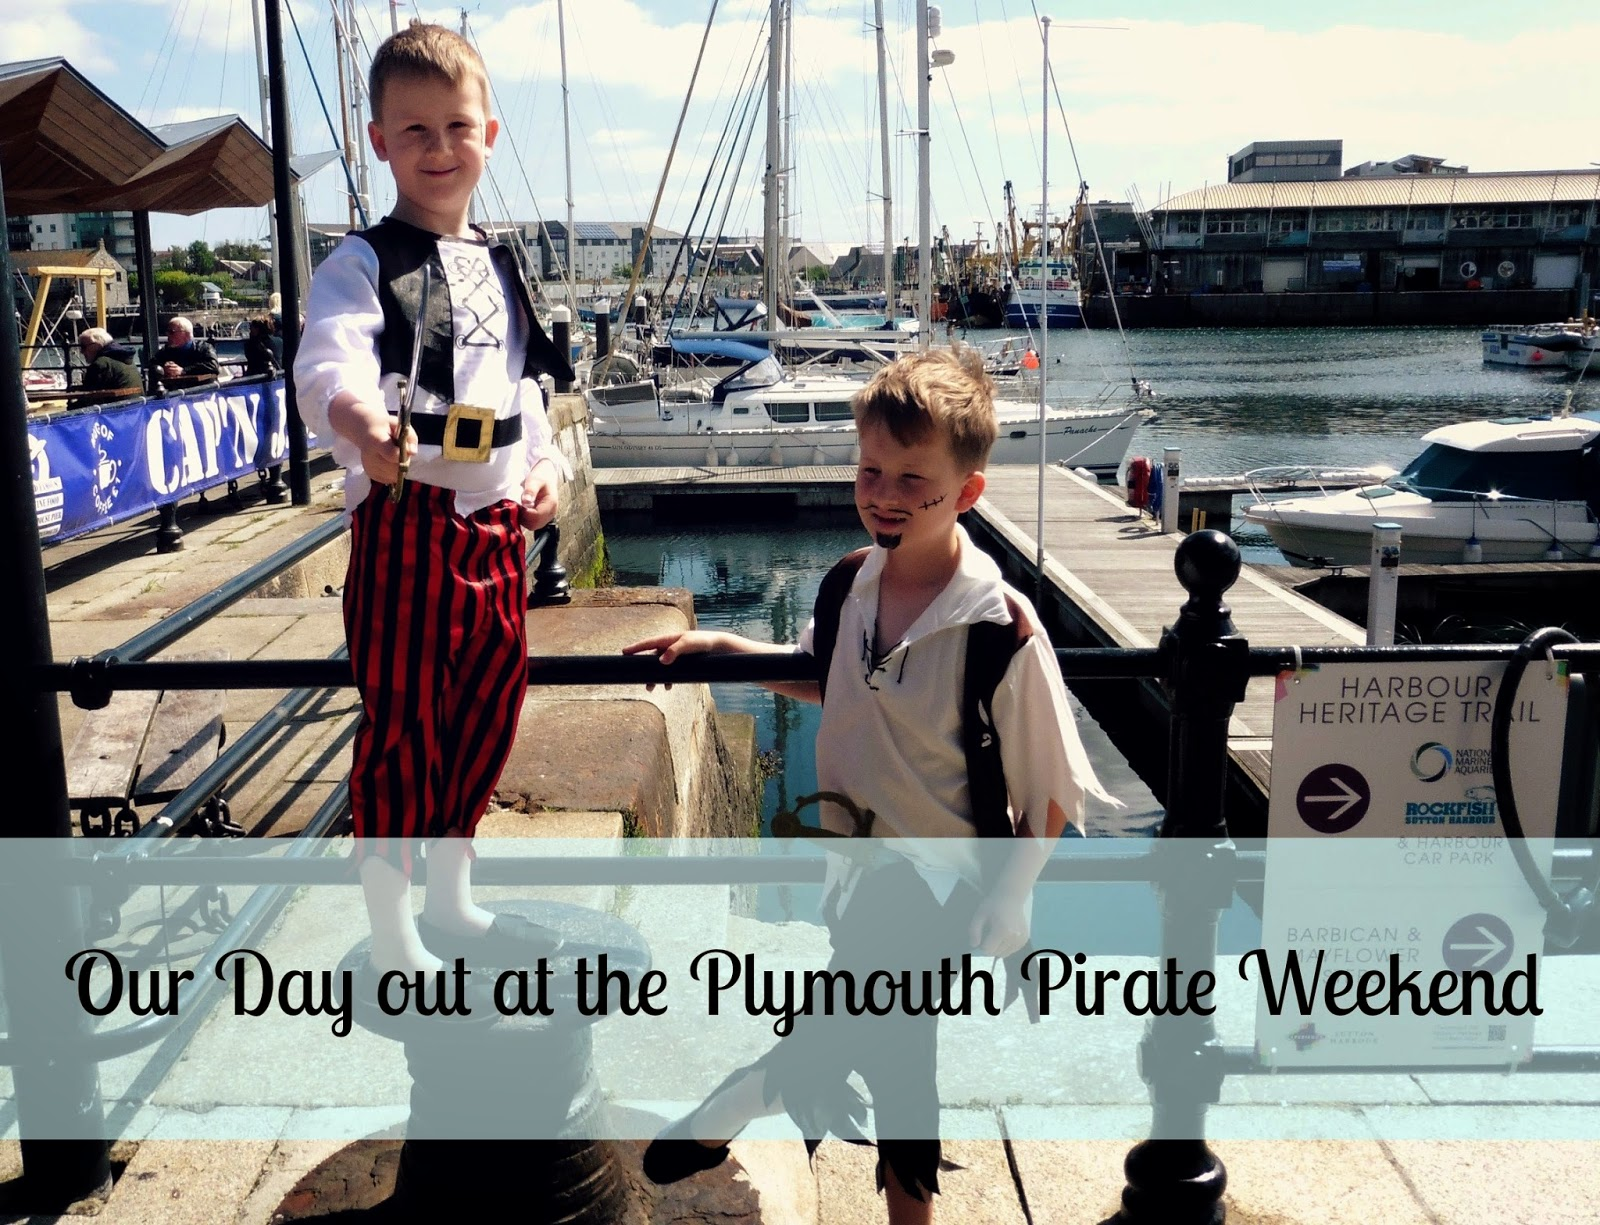 plymouth, sutton, harbour, barbican, hoe, pirates, weekend, blogger, blog, fun, cosplay, fun, seaside